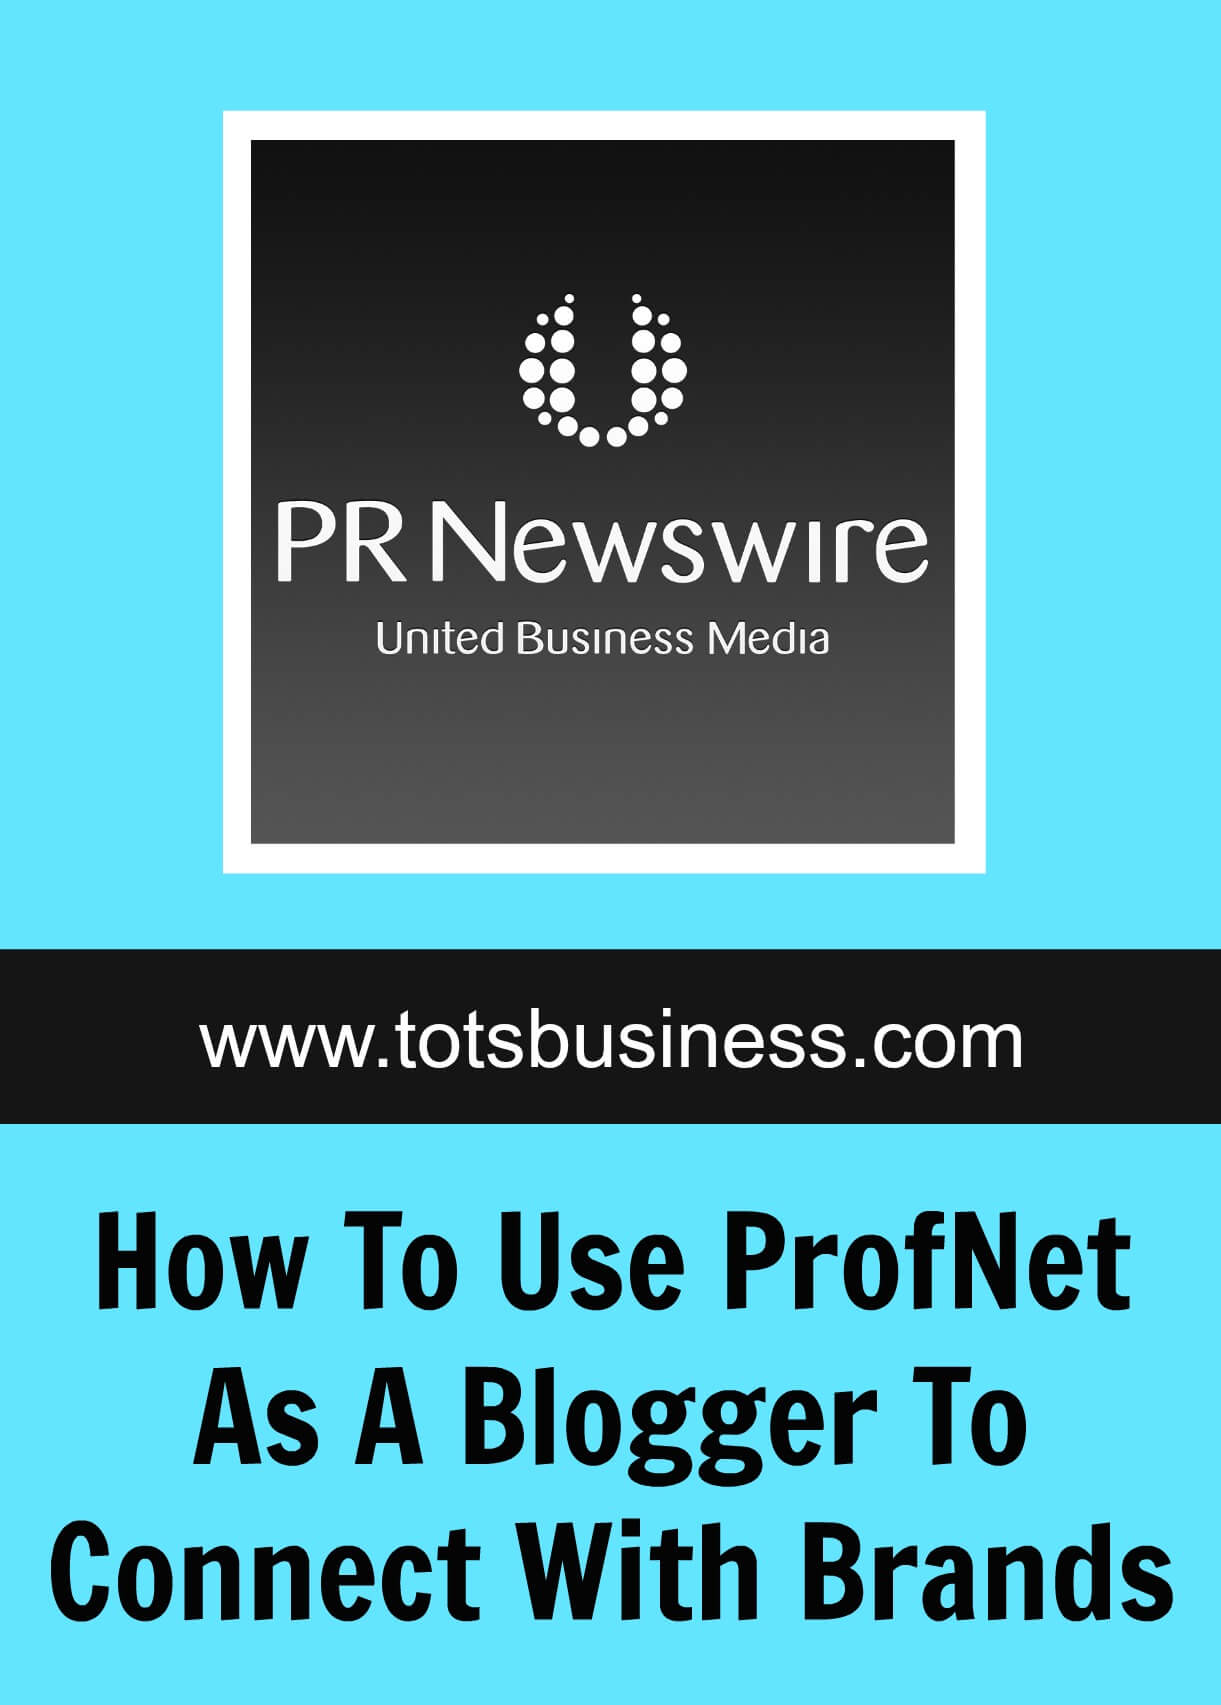 Thinking Outside The Sandbox: Business How-To-Use-ProfNet-As-A-Blogger-To-Connect-With-Brands How To Use ProfNet As A Blogger To Connect With Brands All Posts Blogging  profnet problogger momblog how to connect brands blogger blog